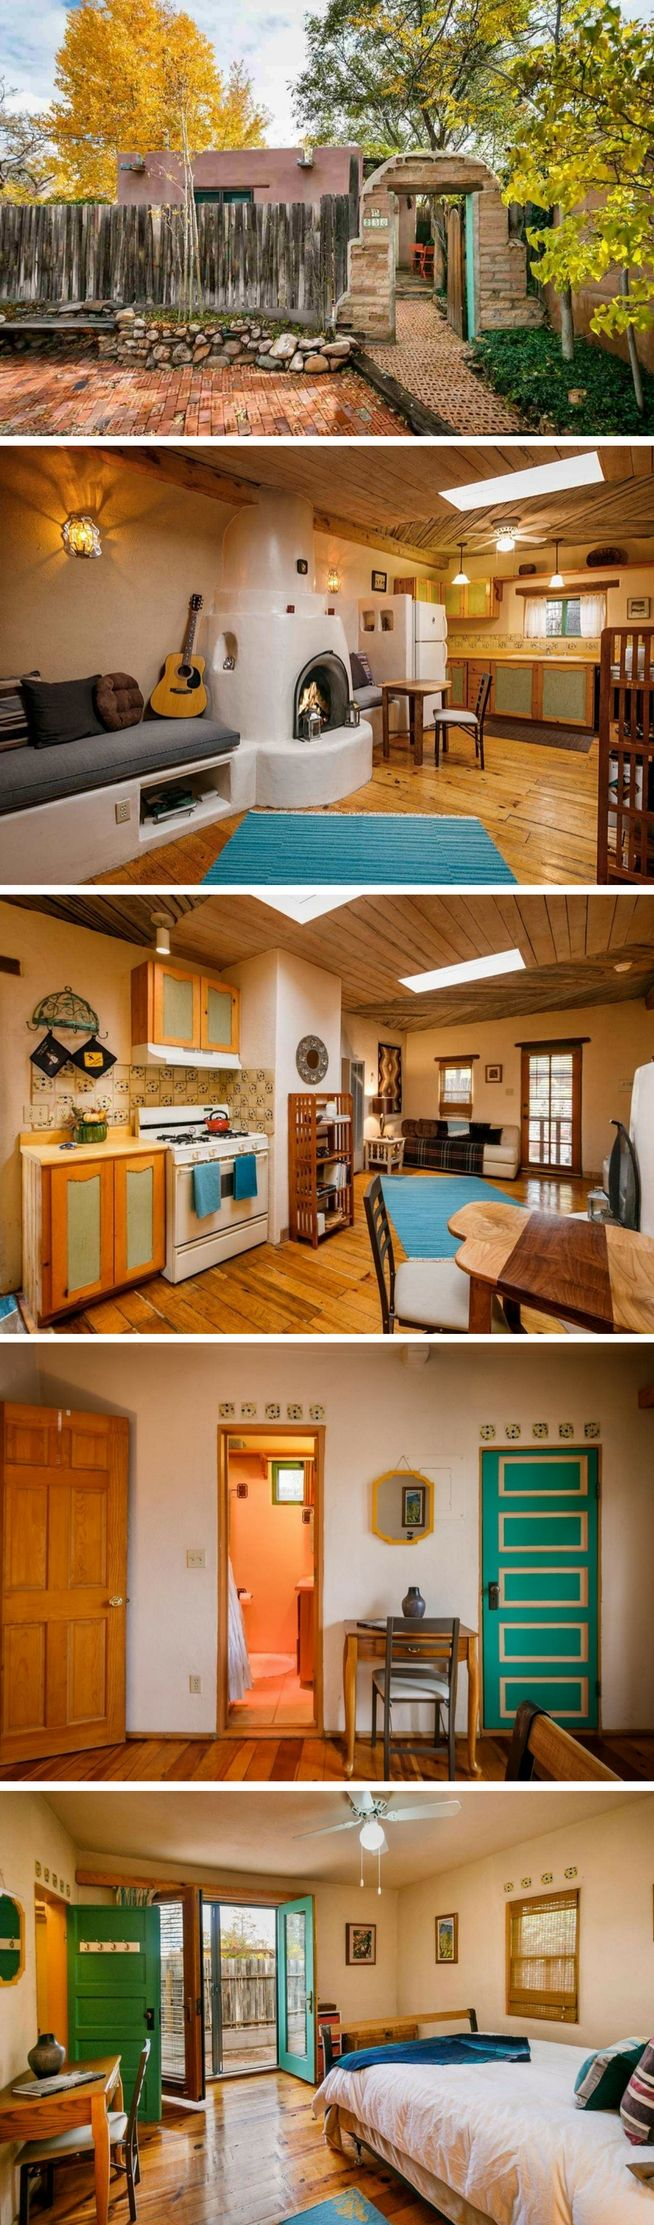 Tiny House Town Santa Fe Tiny Home Tiny House Towns Tiny House Nation House